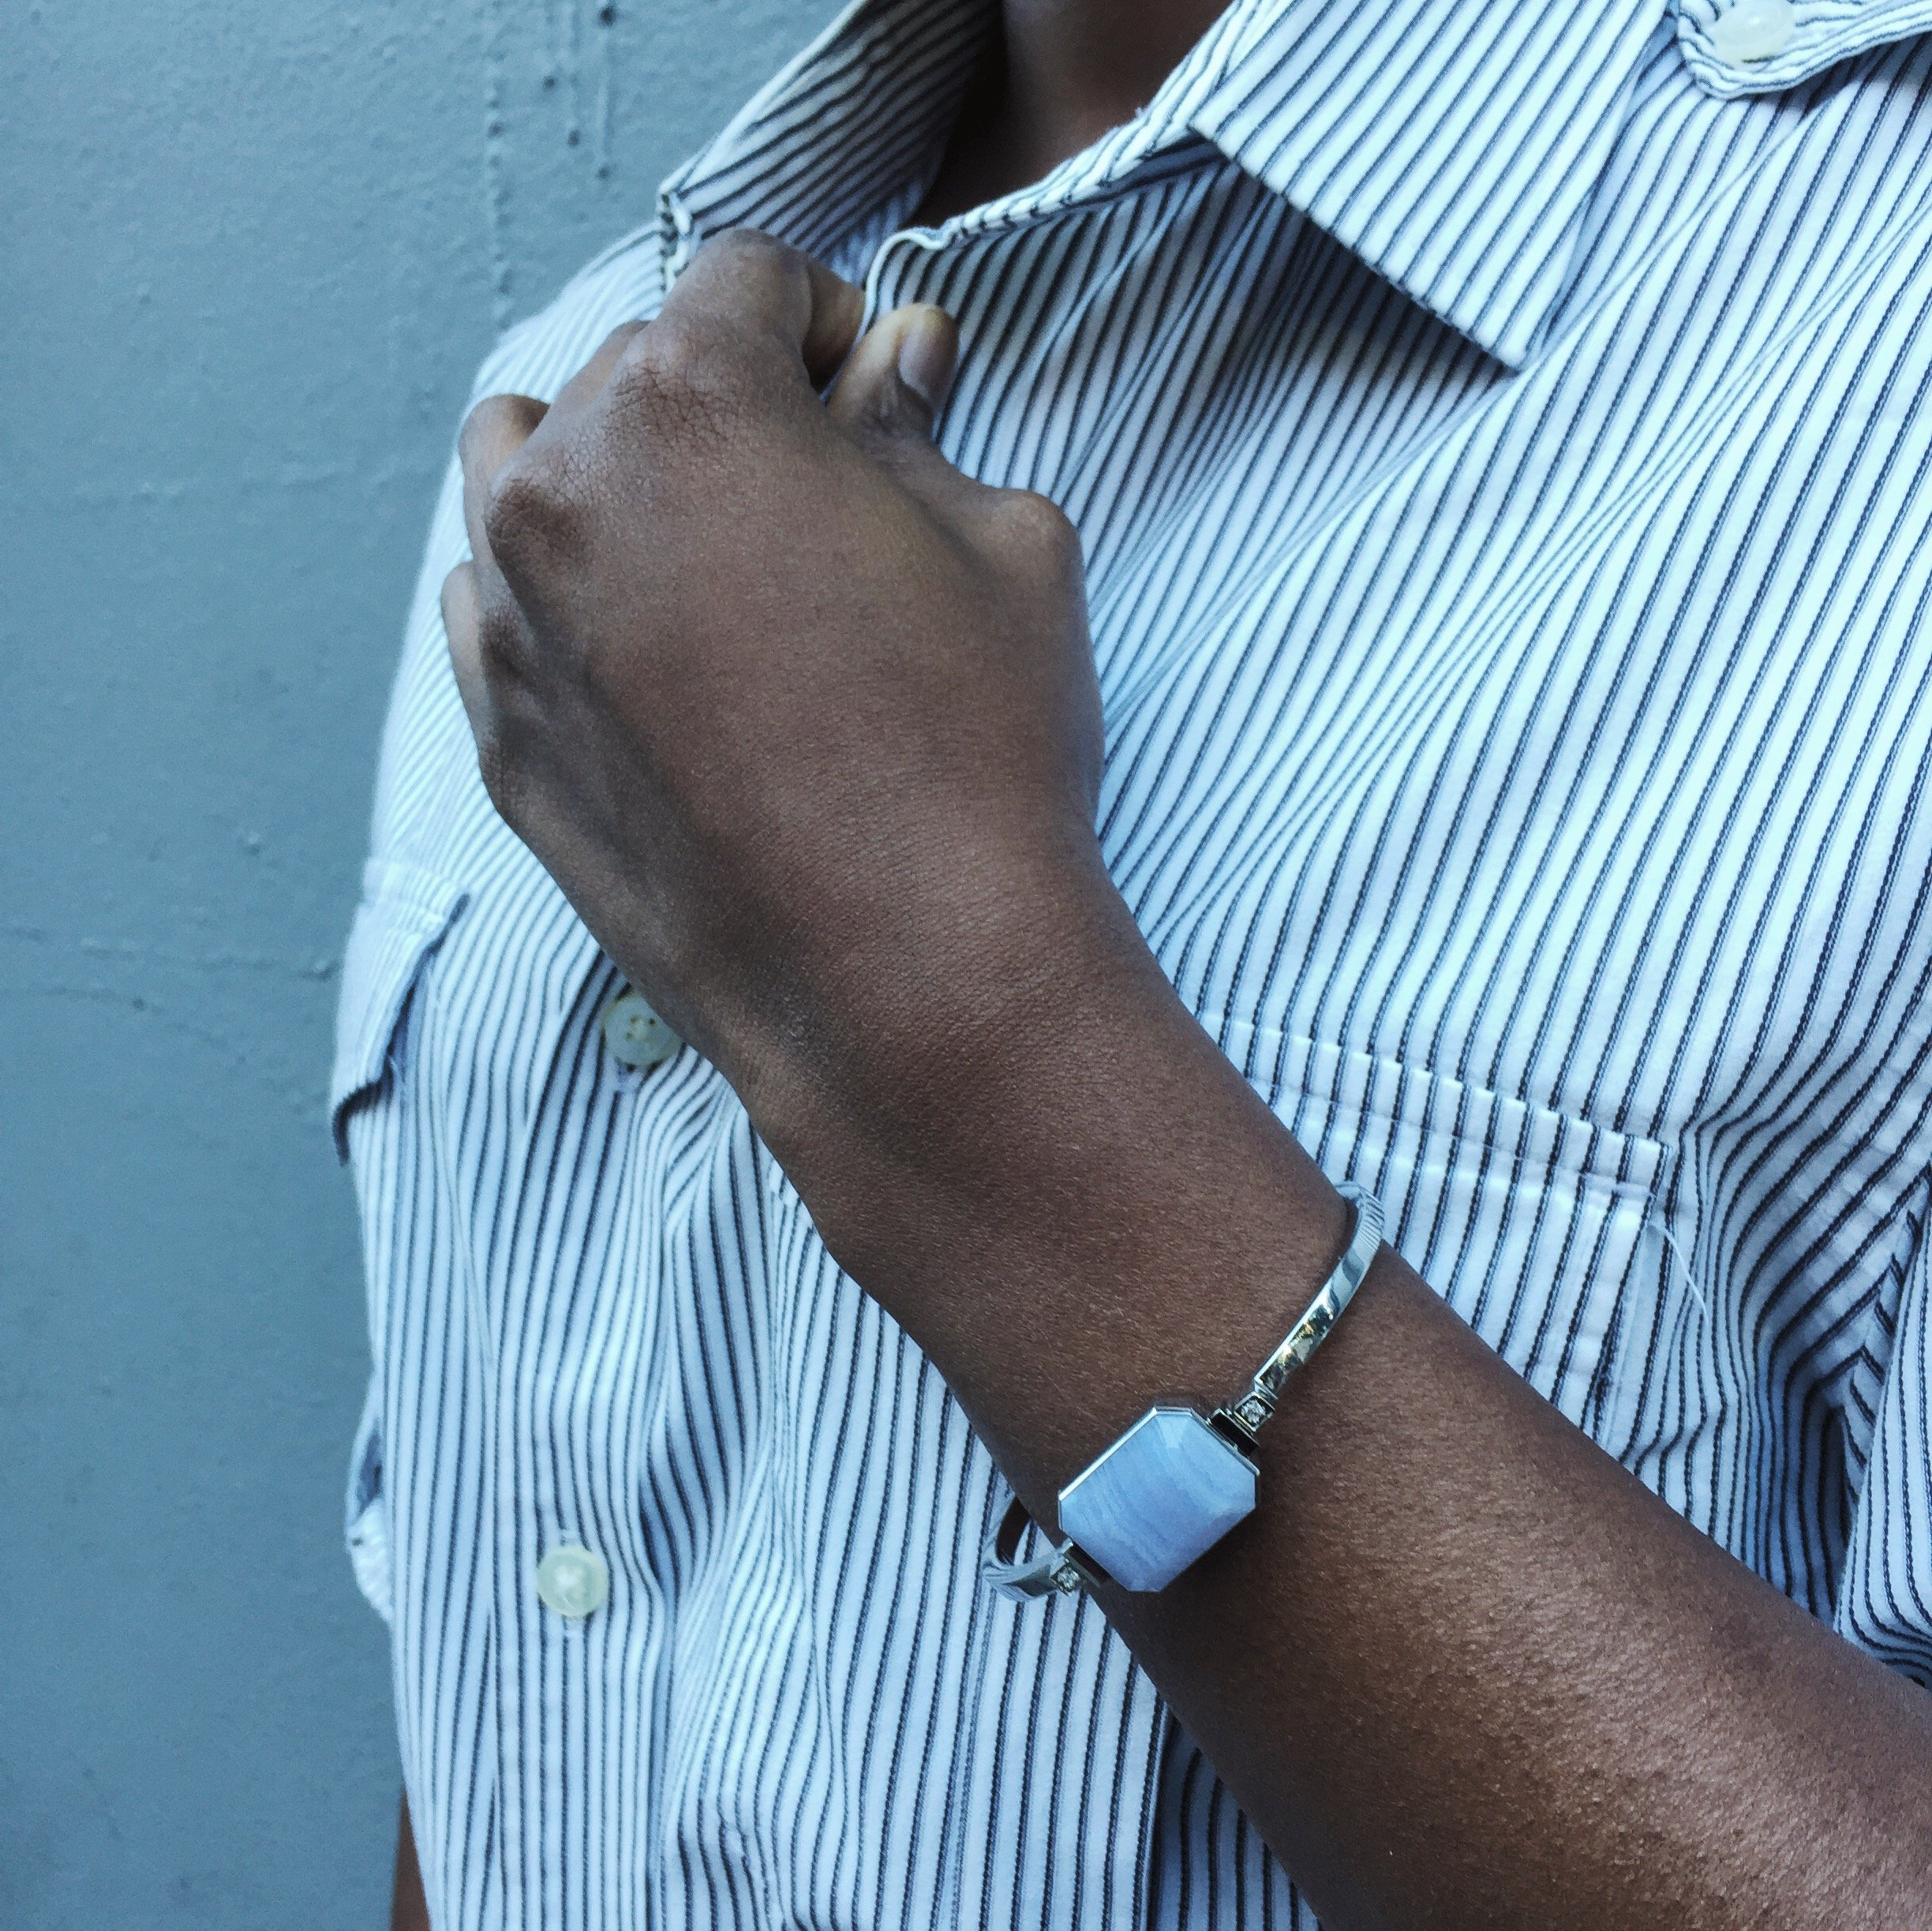 Ringly Luxe - Activity Tracker + Mobile Alerts + Meditation Smart Bracelet by RINGLY (Image #6)